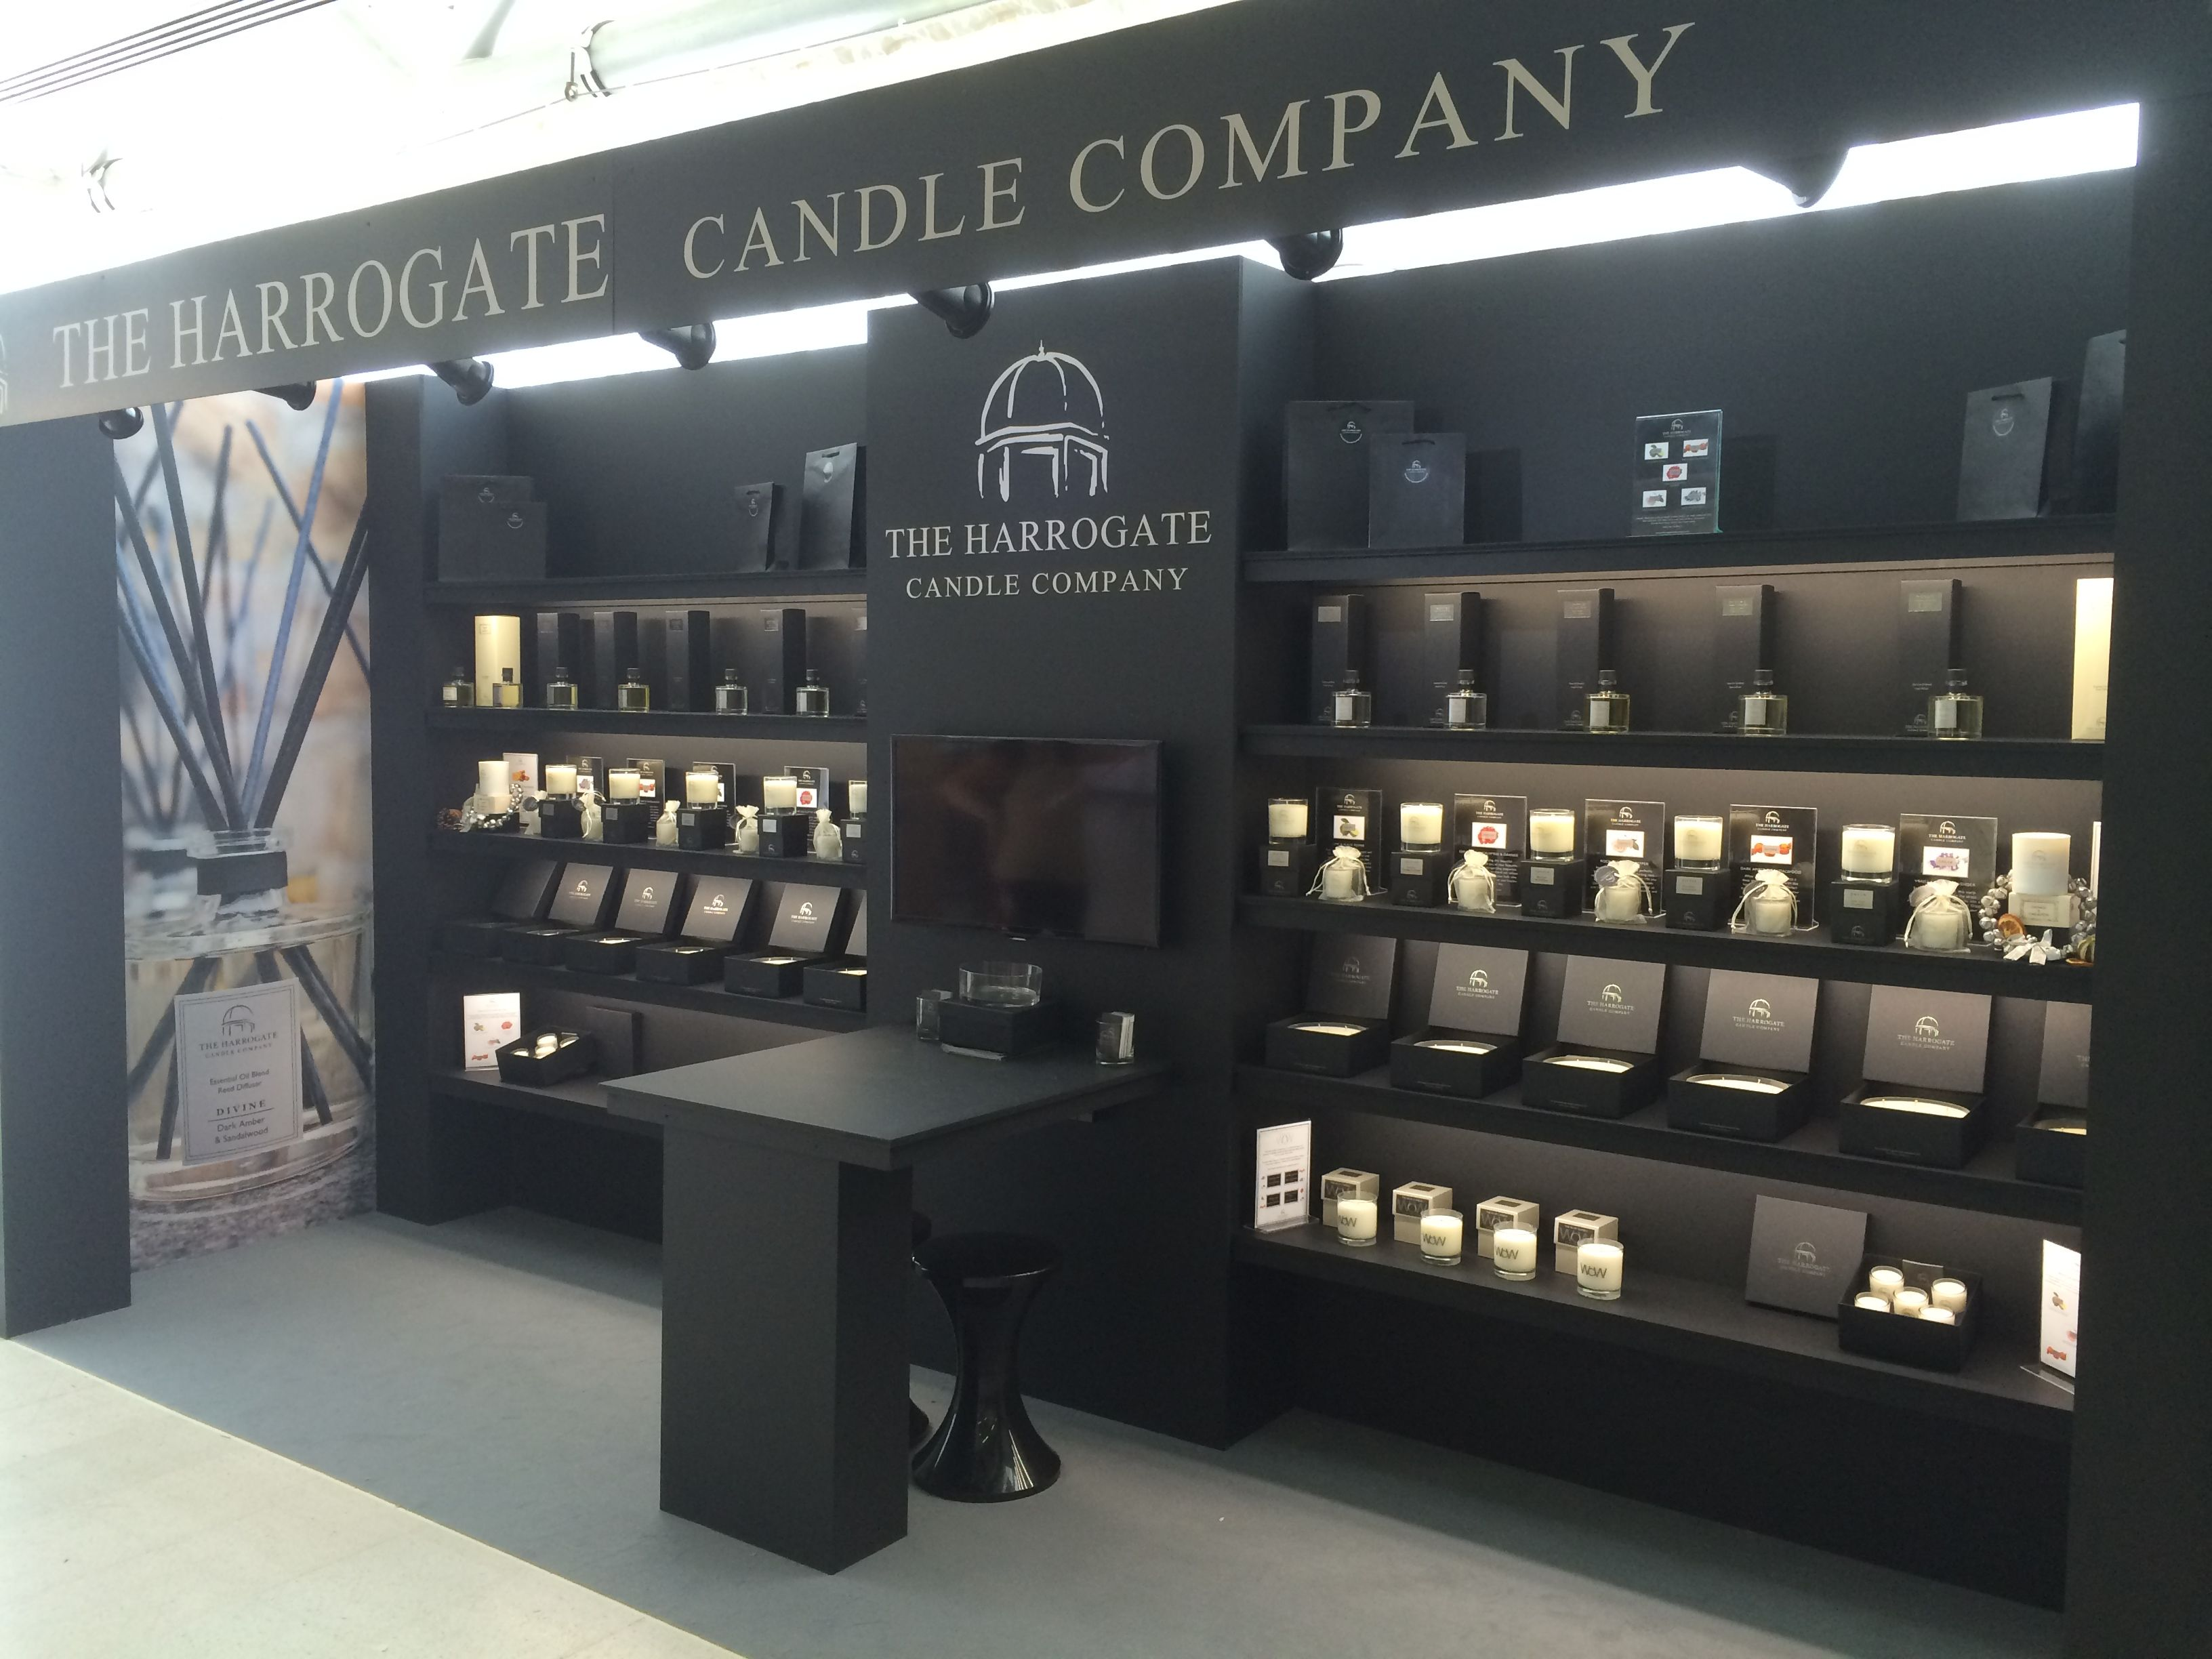 Exhibition Stand Design Harrogate : The ladies at harrogate candle company did